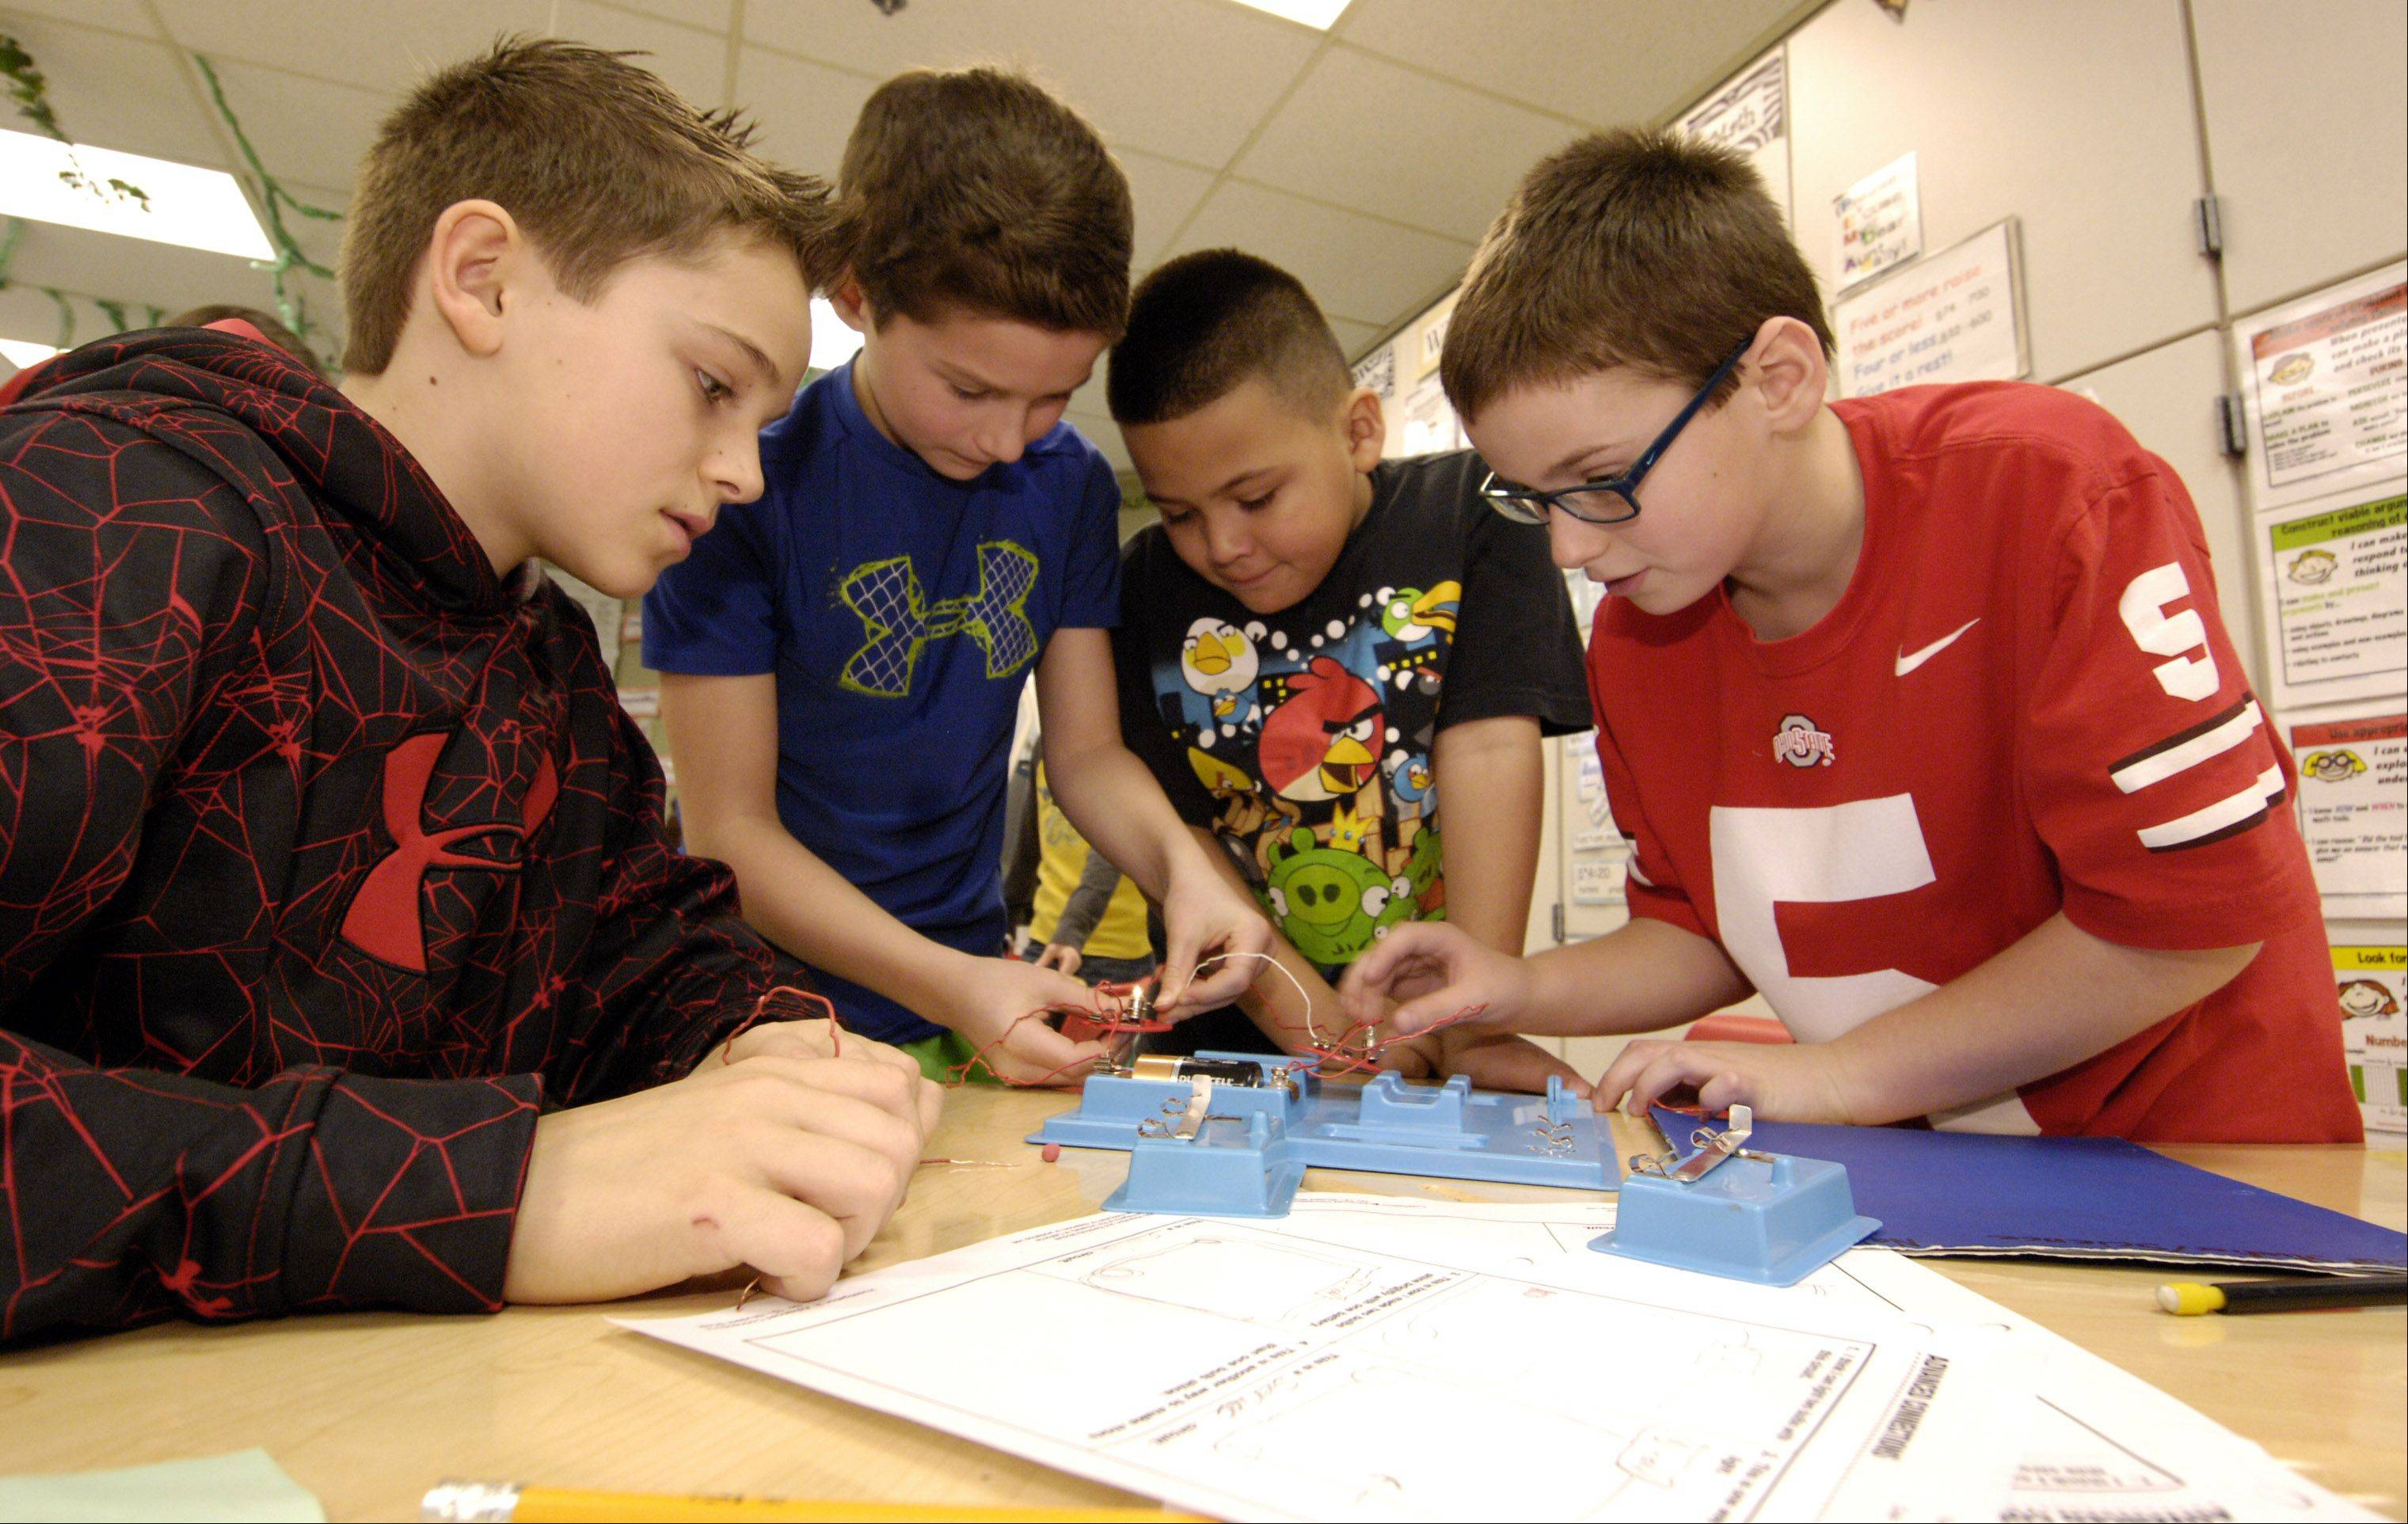 Fourth grade students, Michael Rossi Nathan Navarro, Mario Vences, and Luke Sullivan work on their an electricity science project at Churchill School.